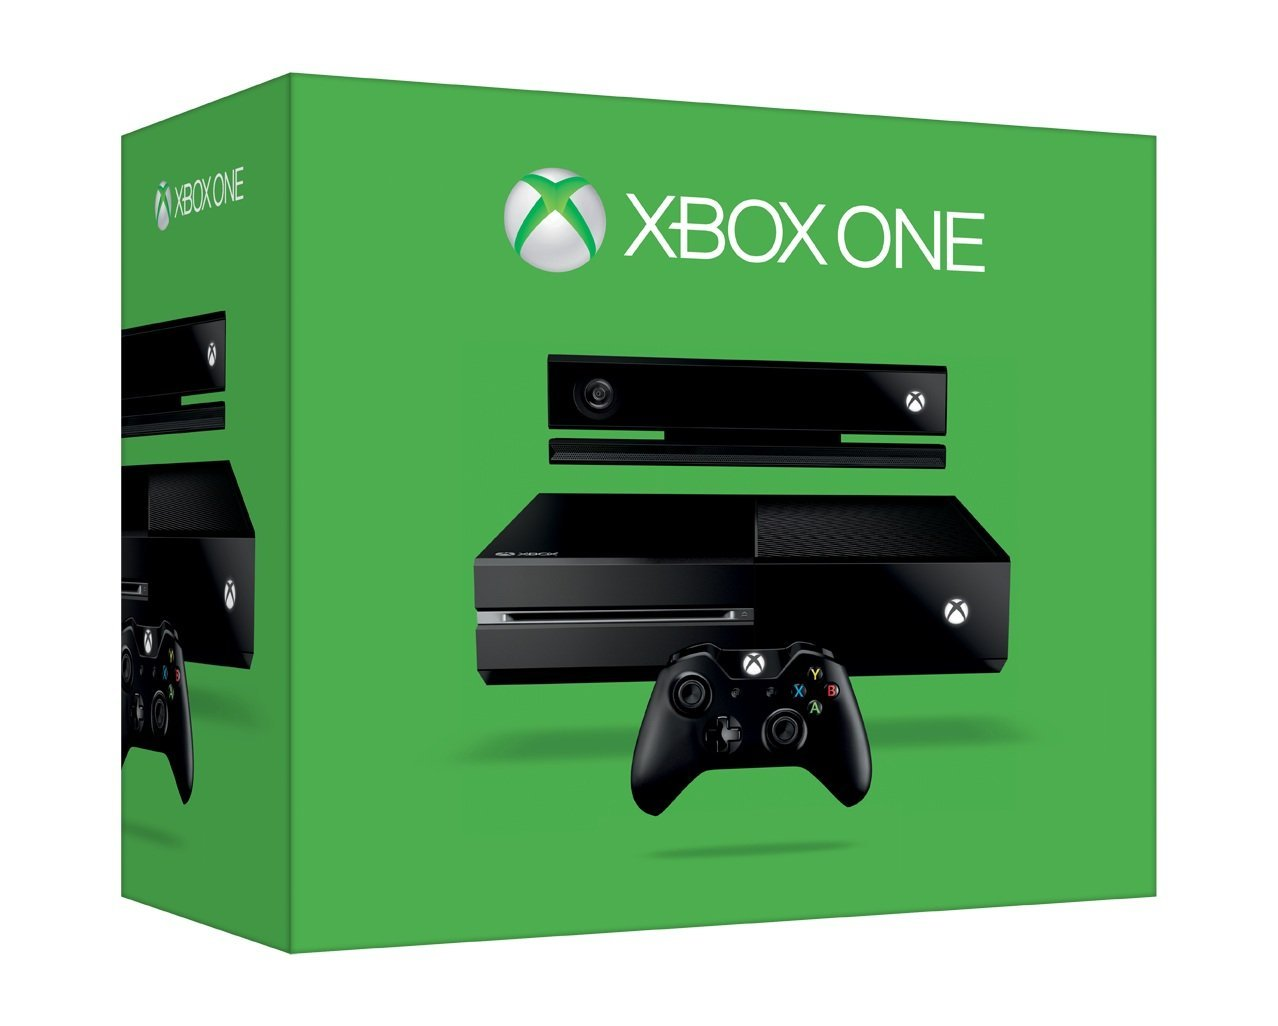 xbox one j 4 insert coin. Black Bedroom Furniture Sets. Home Design Ideas